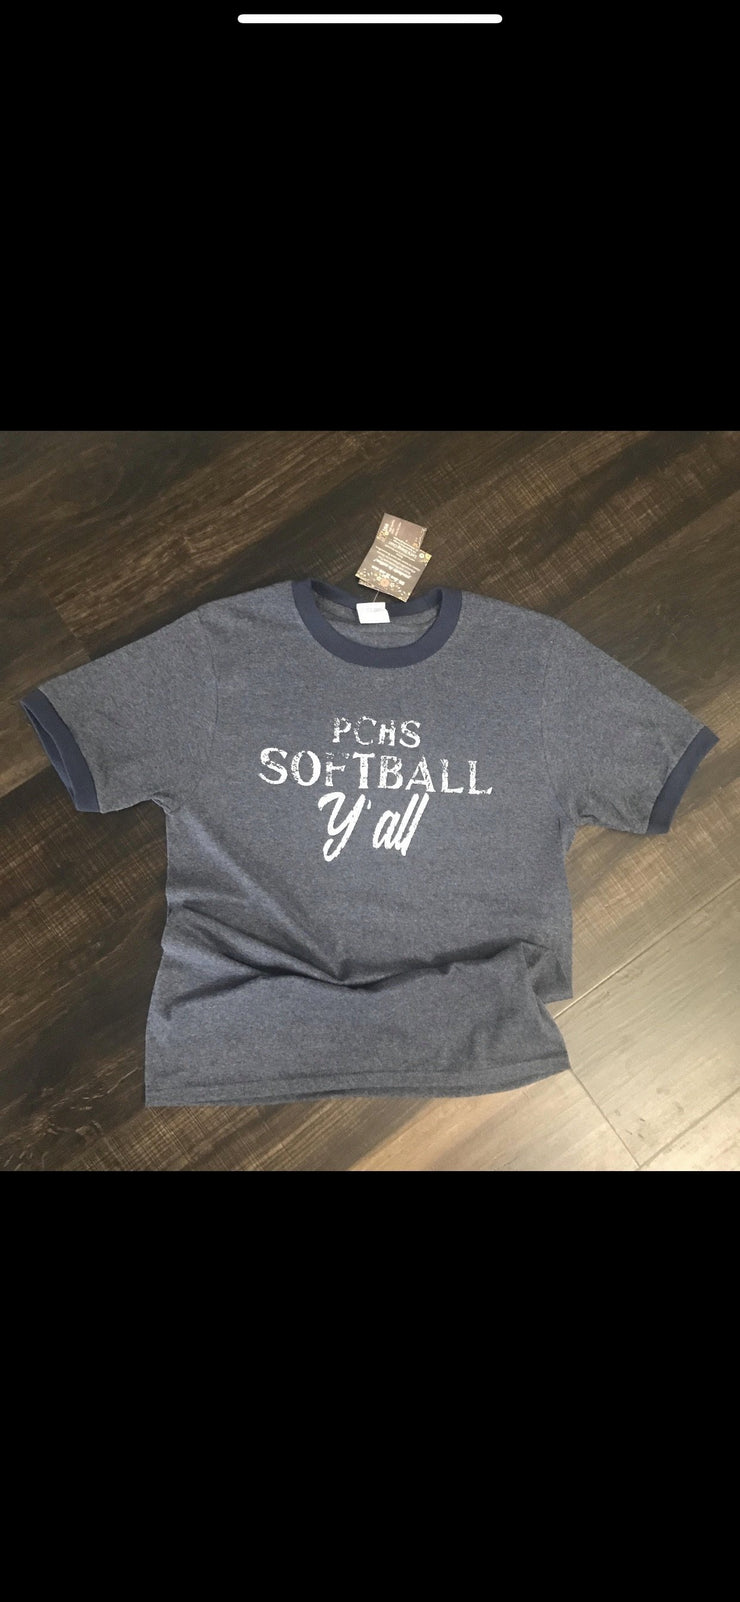 PCHS Softball Y'all Shirts - The Teal Turtle Clothing Company